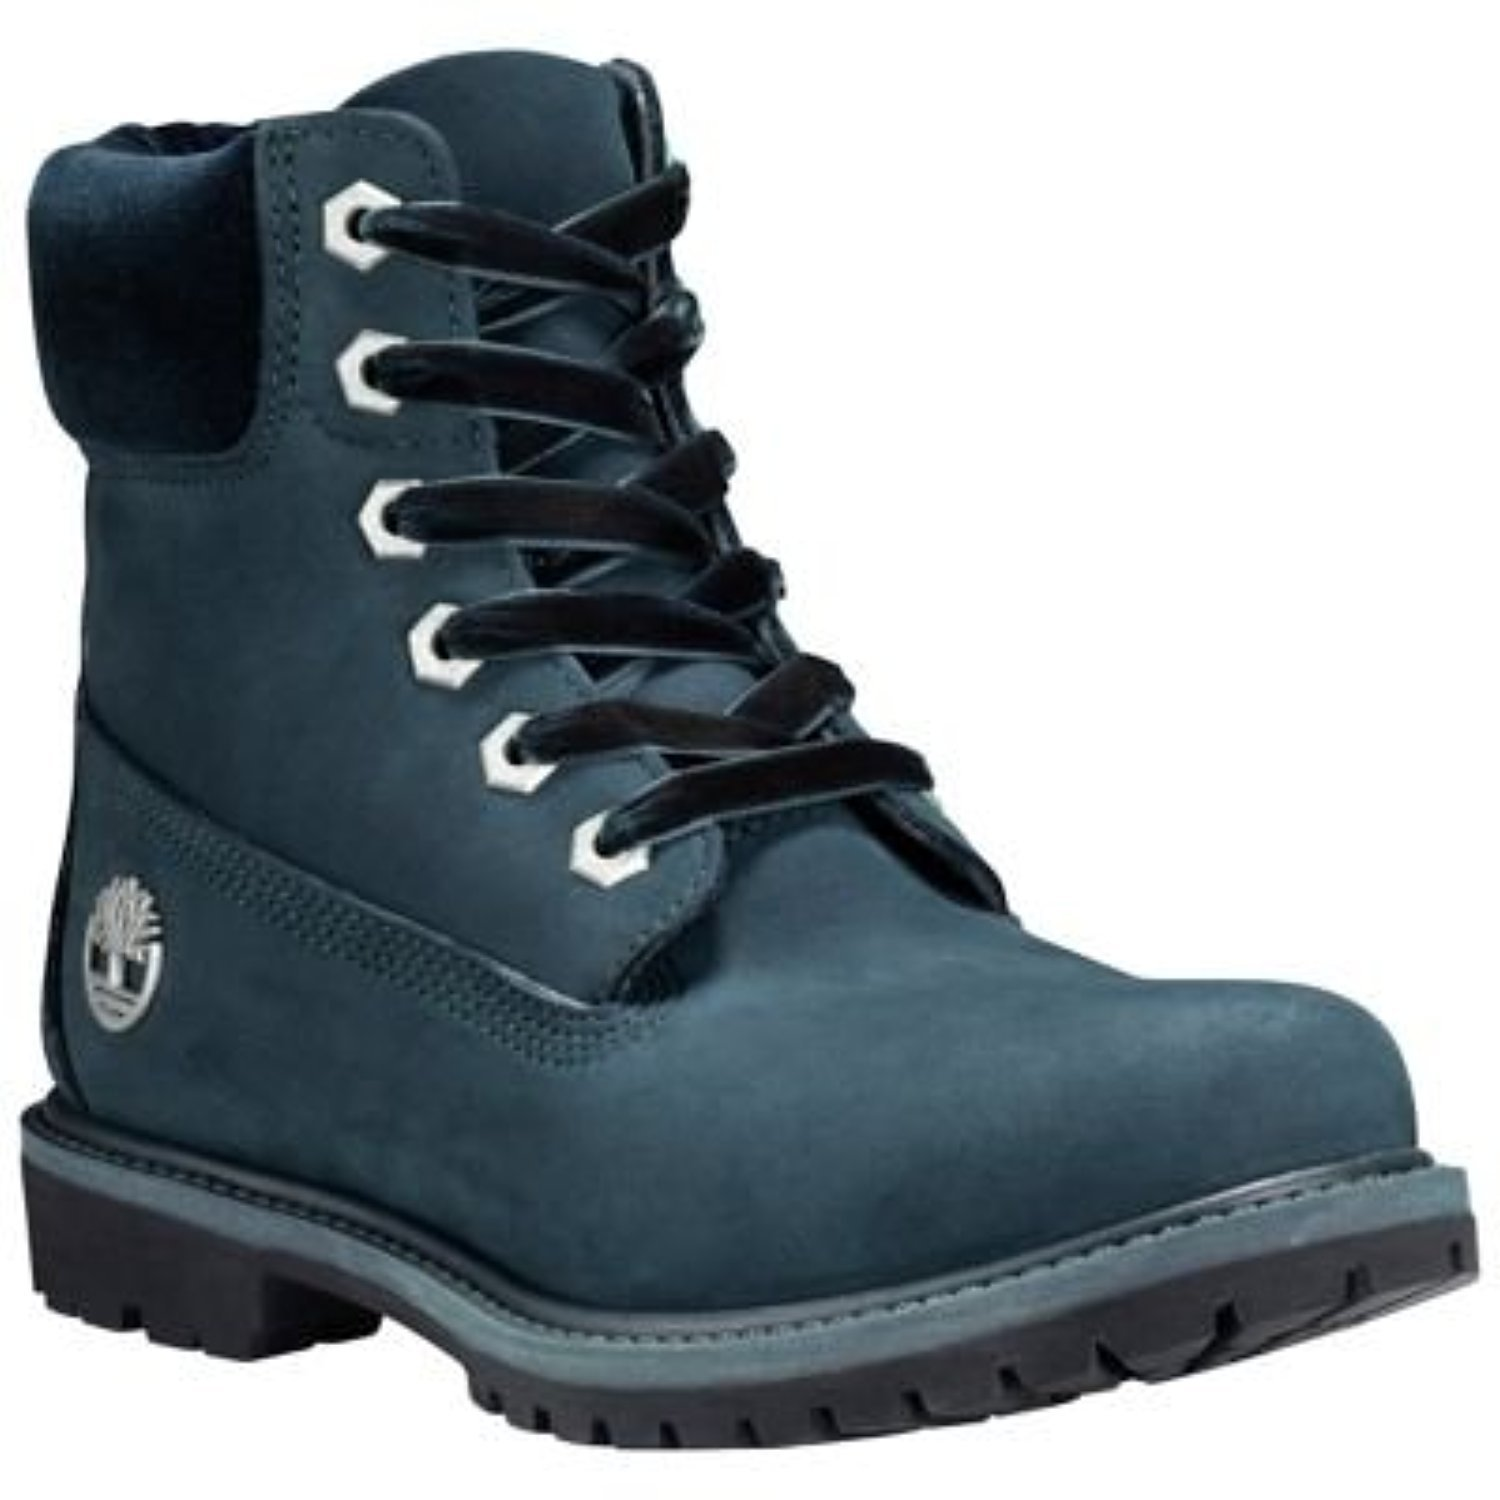 Timberland Men's 6 Inch Boot Dark Blue $140.00